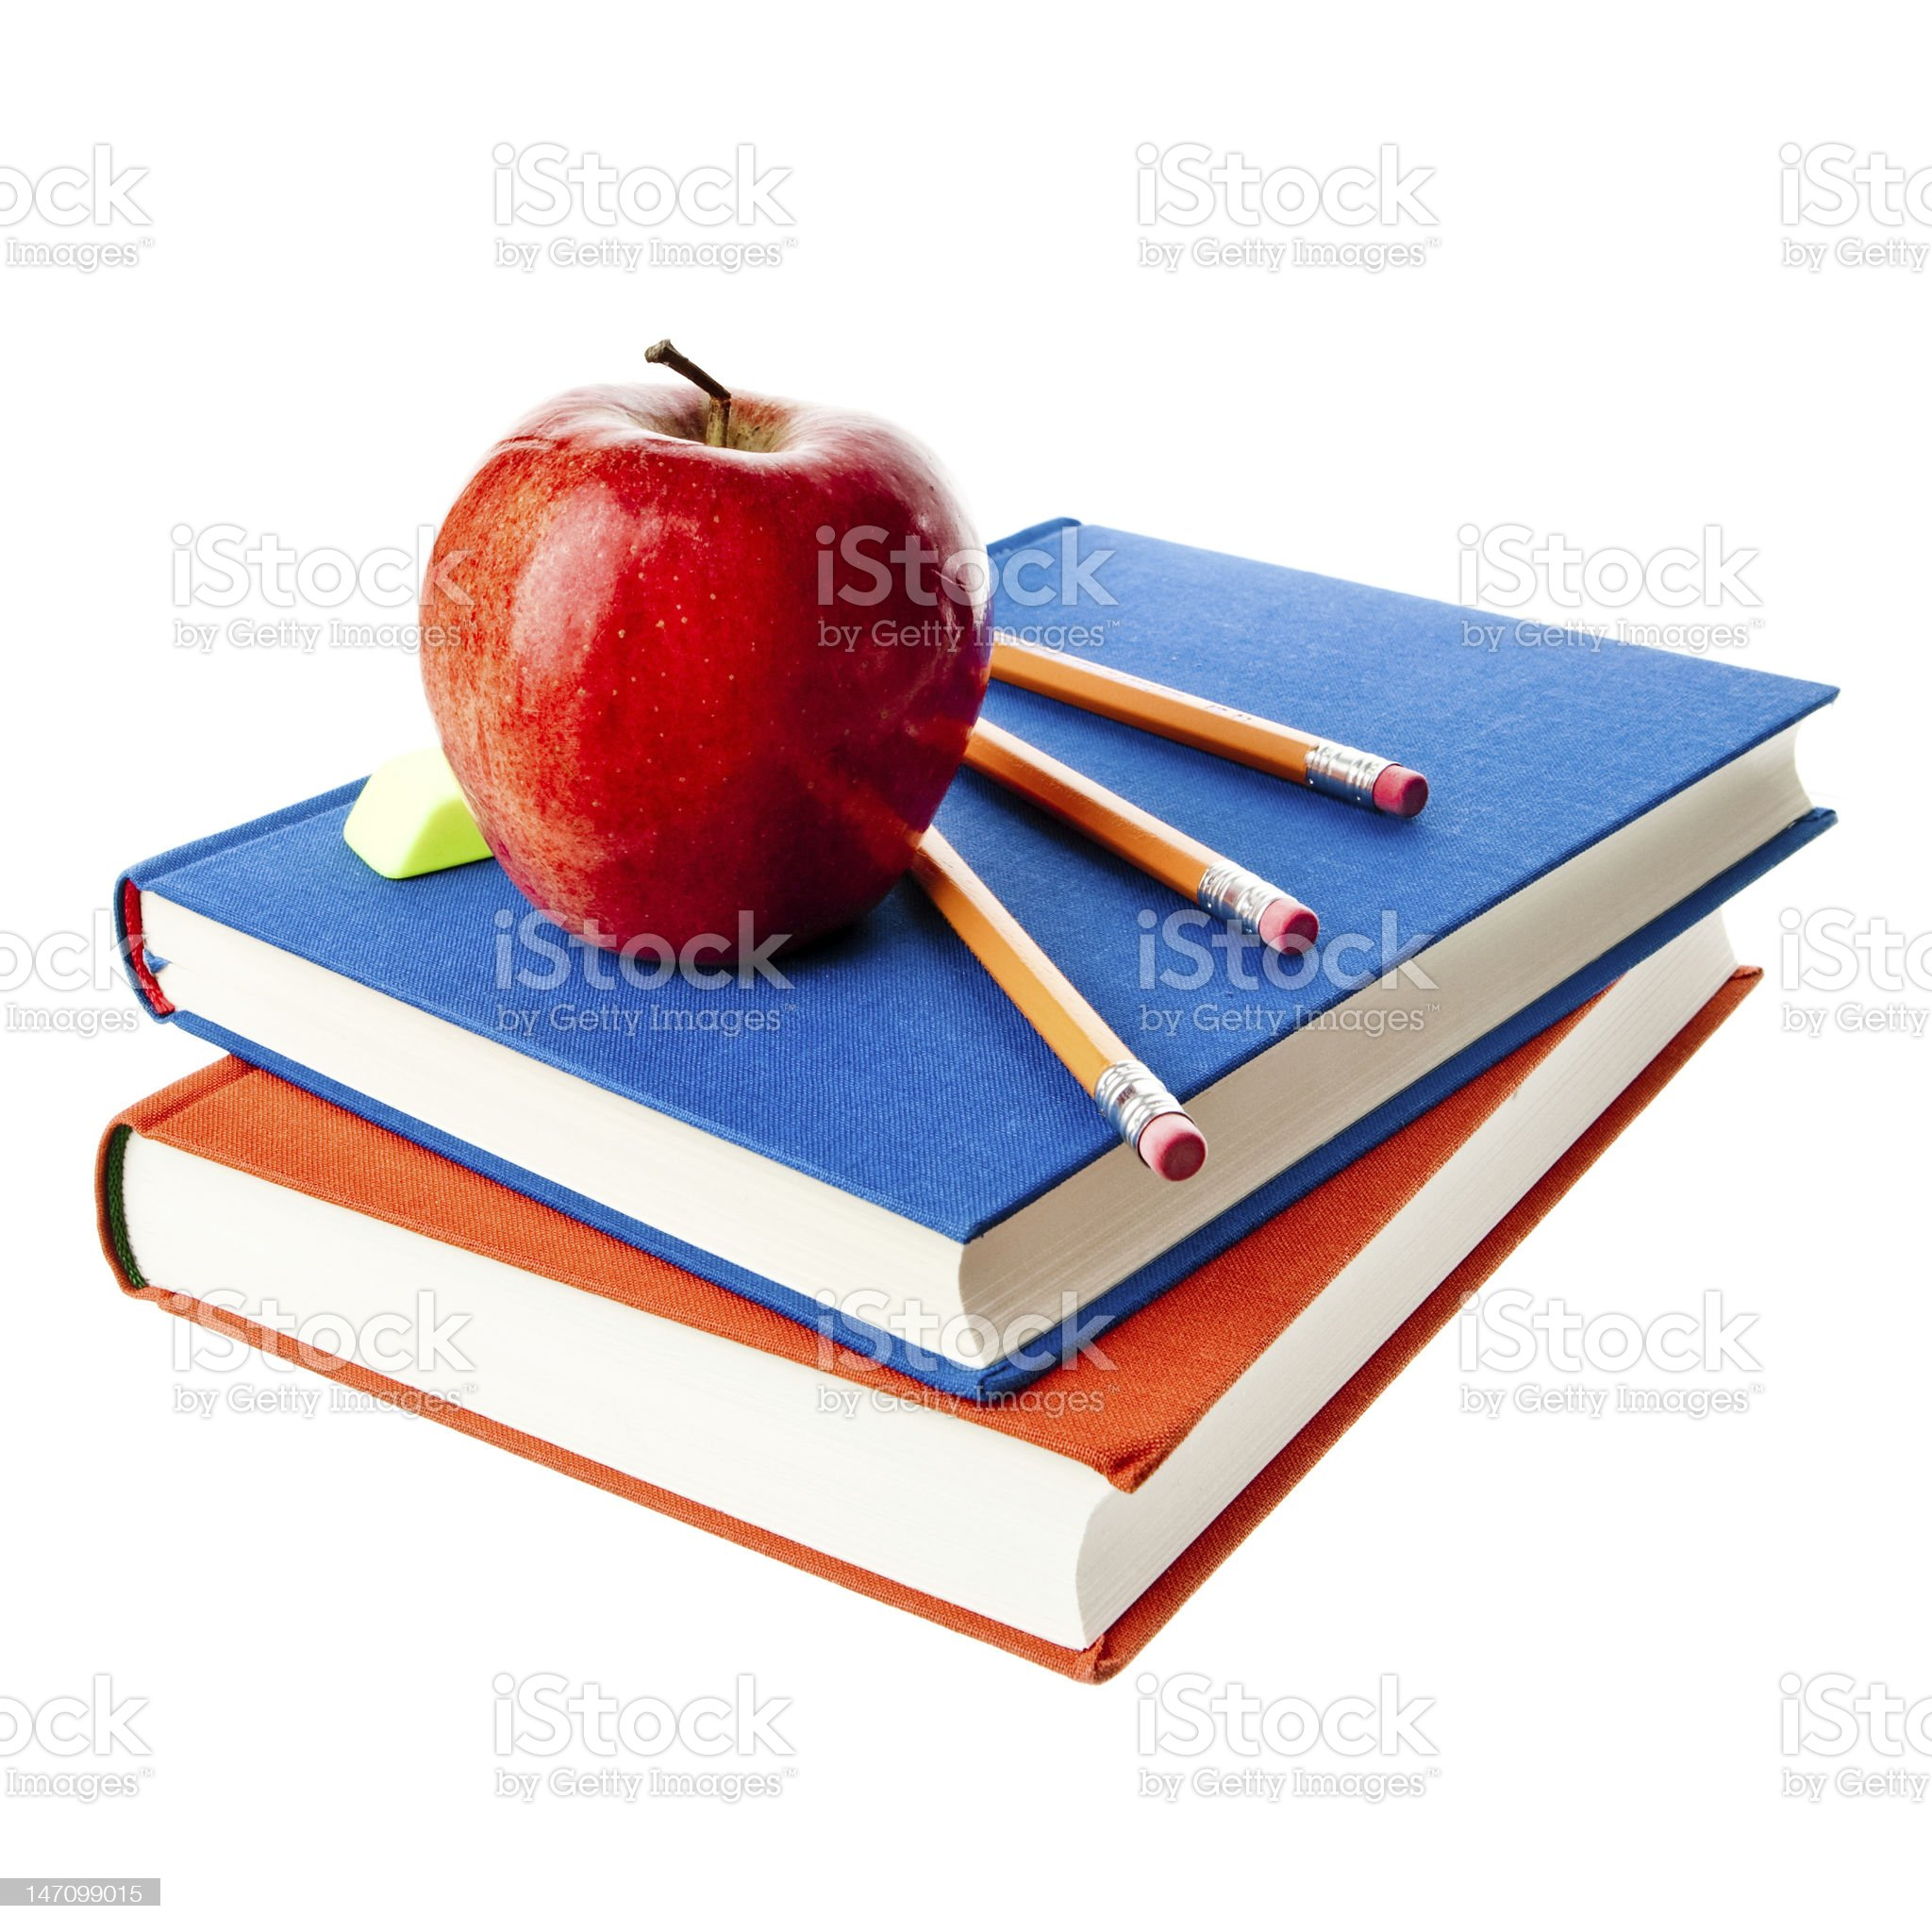 Apple and school essentials royalty-free stock photo